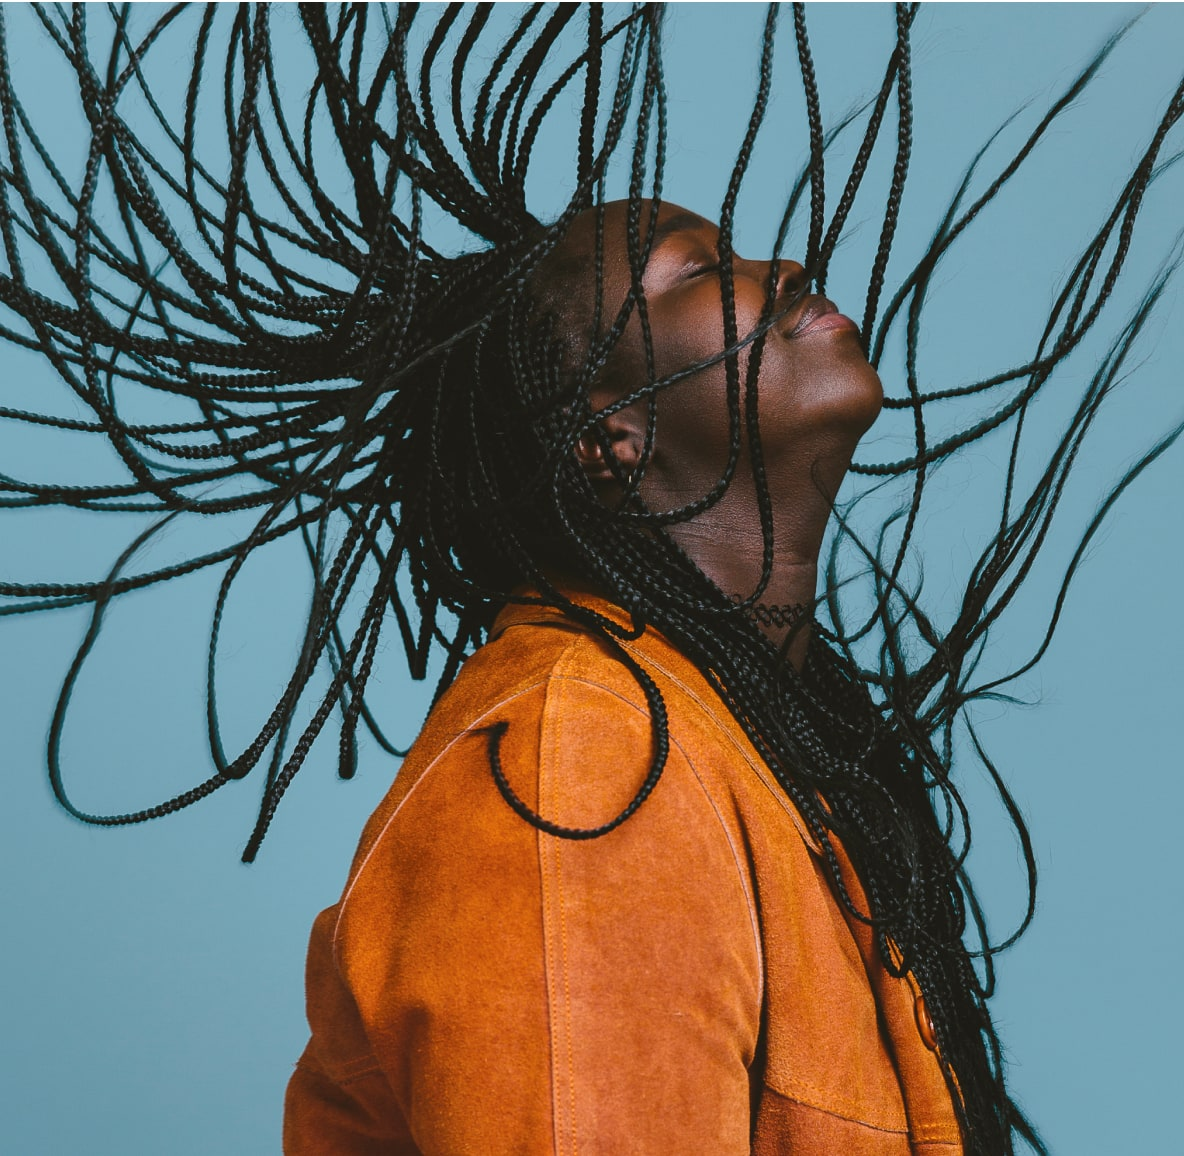 Profile shot of a woman in motion with protective braids spread out around her face.